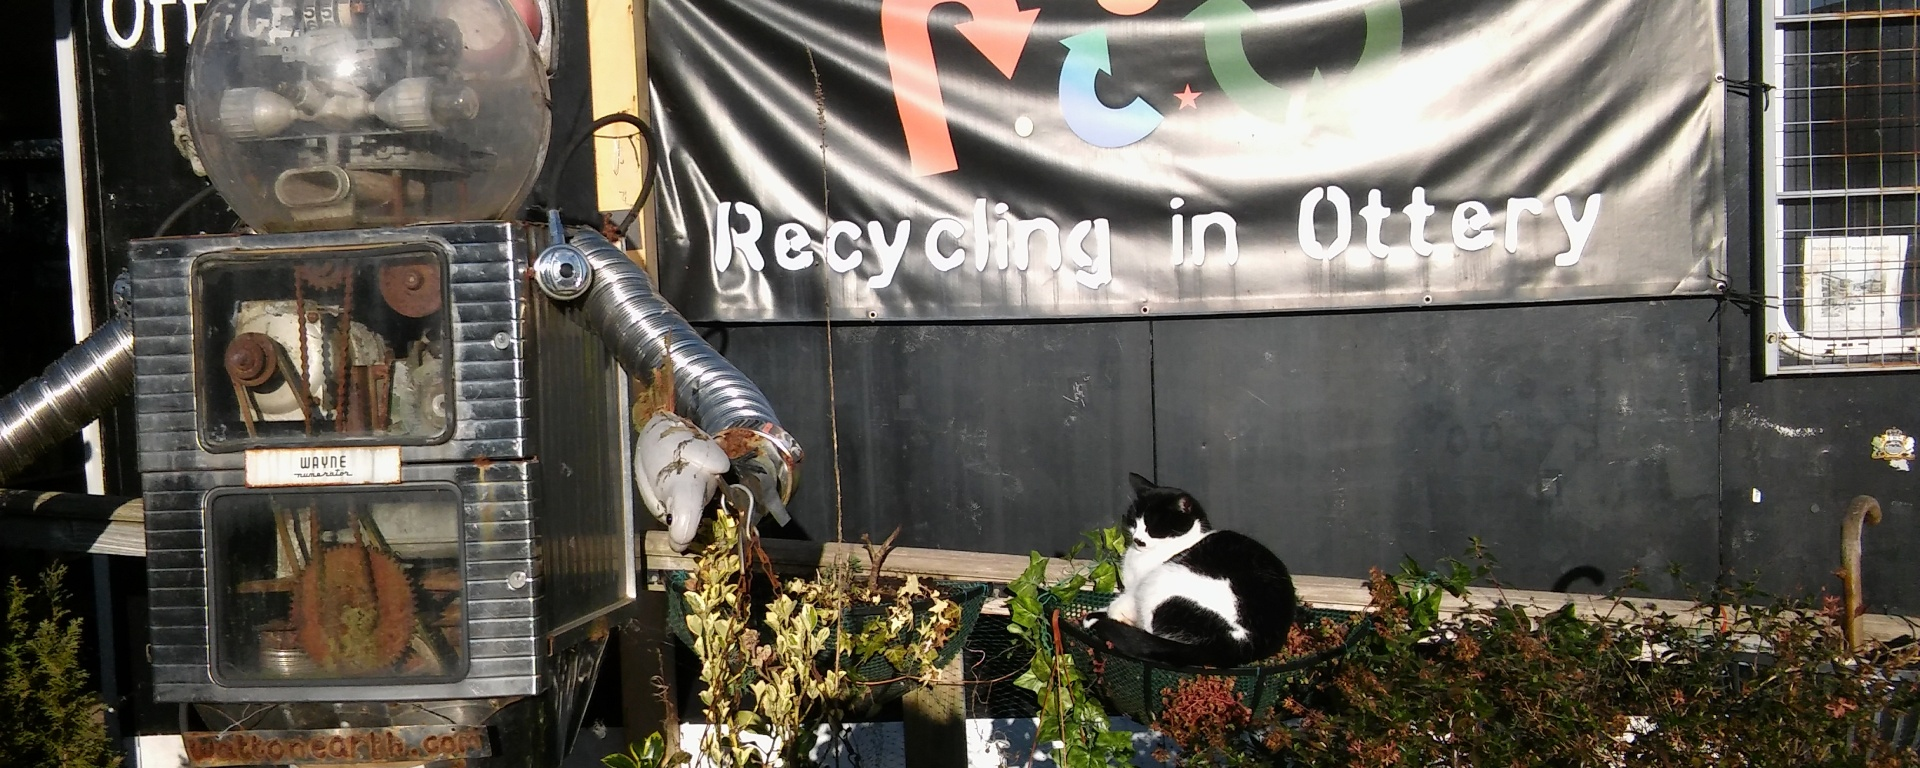 recycling-ottery